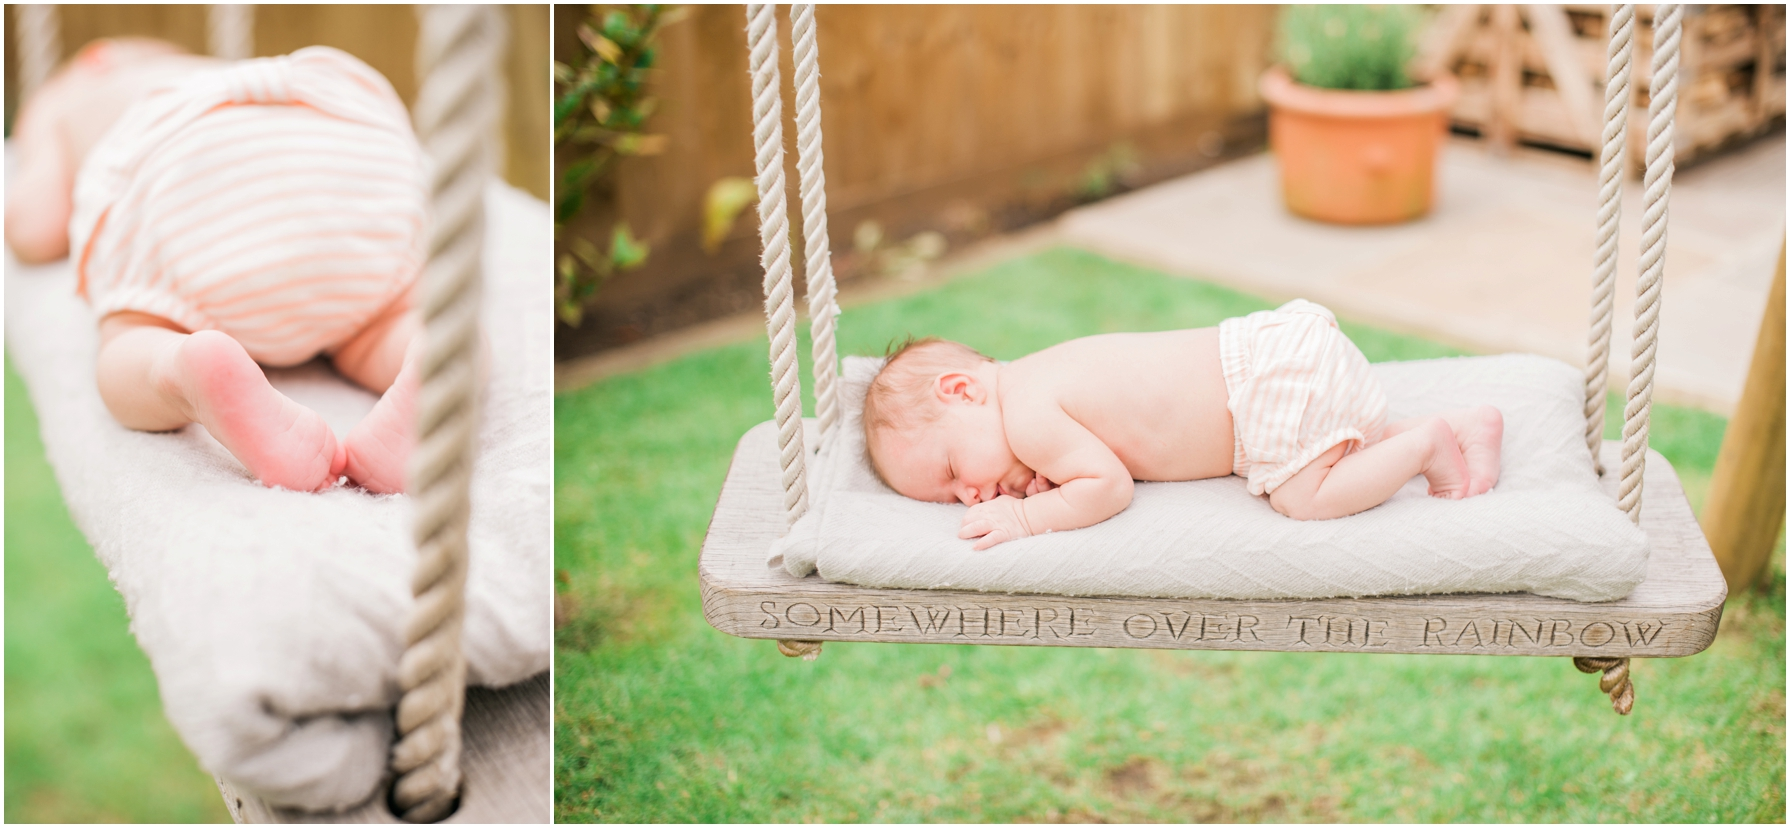 a newborn baby sleeping on a wooden swing